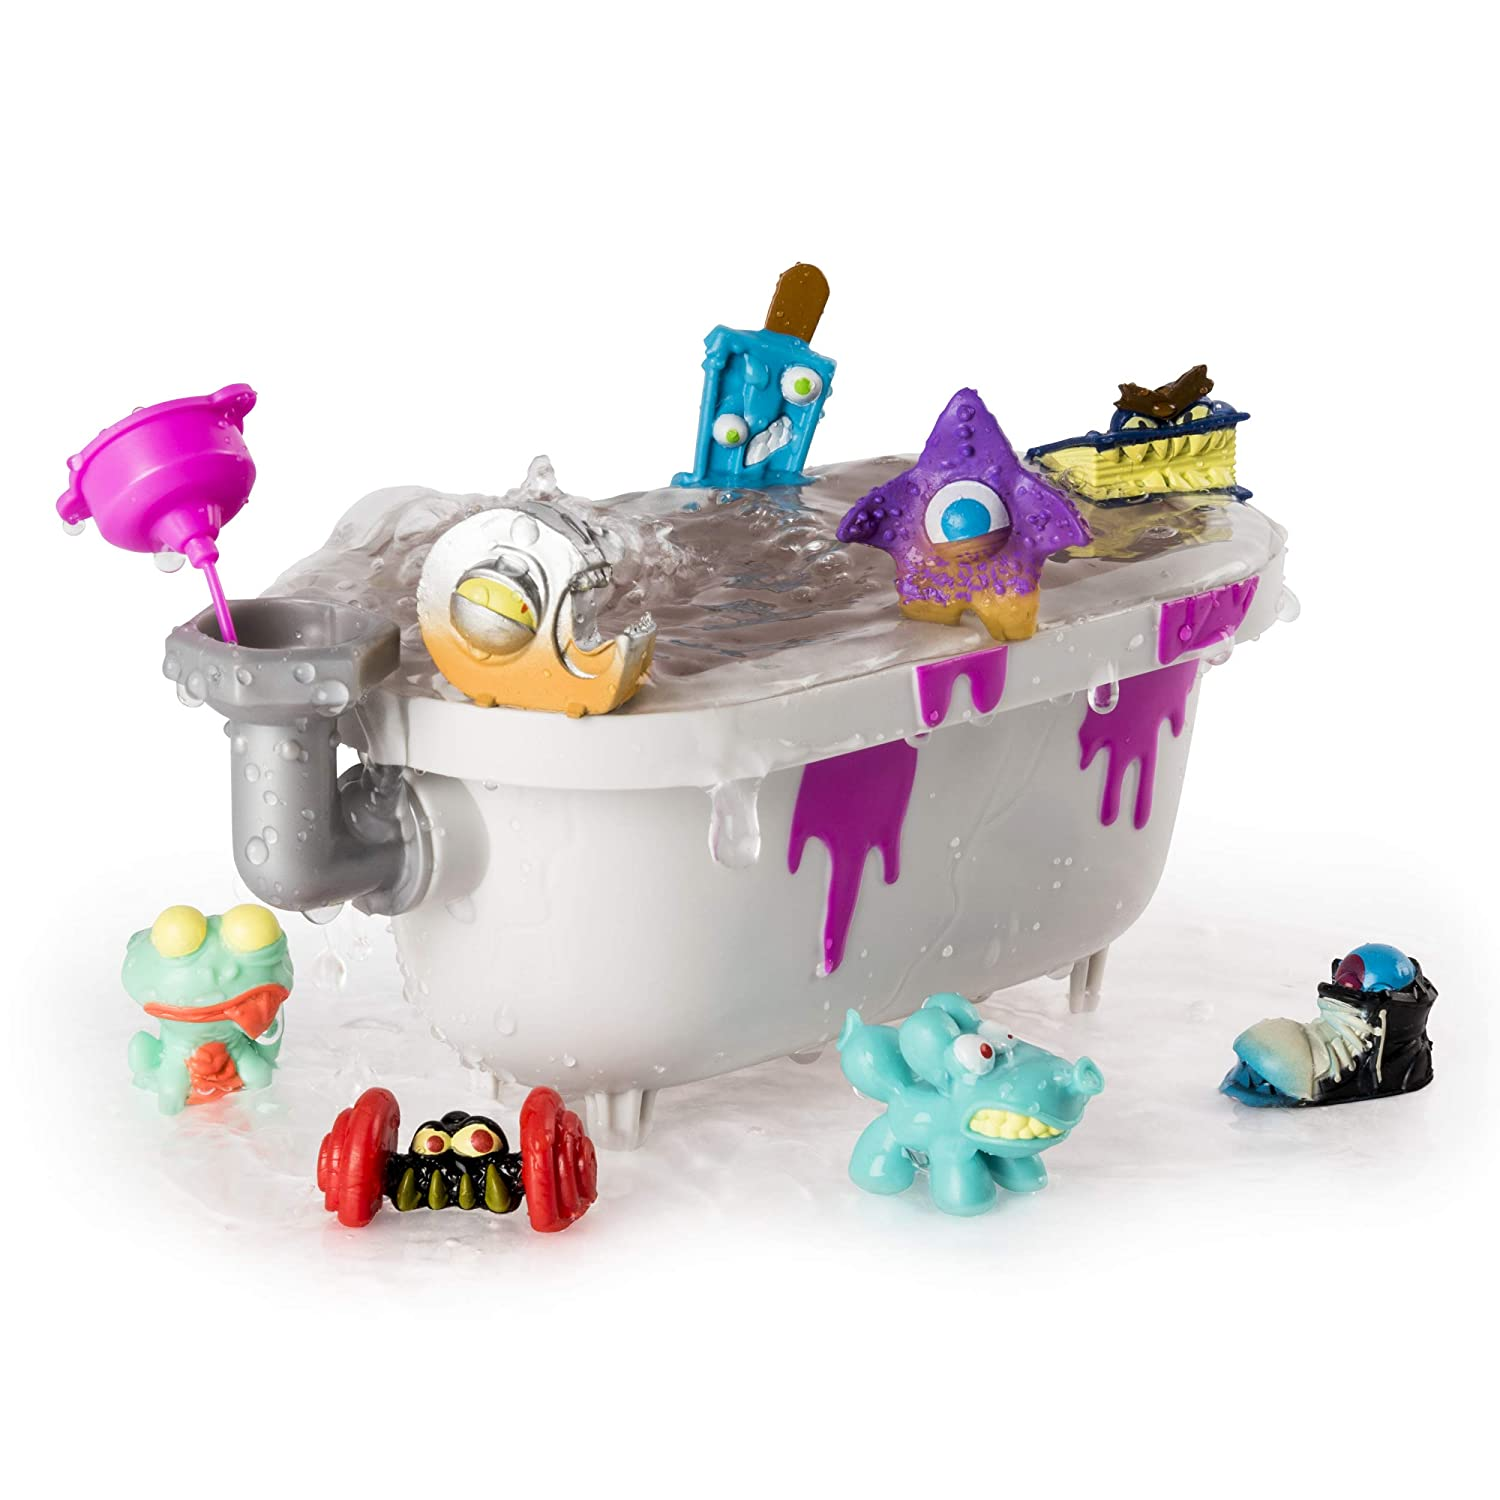 Flush Force Bizarre Bathtub ON...